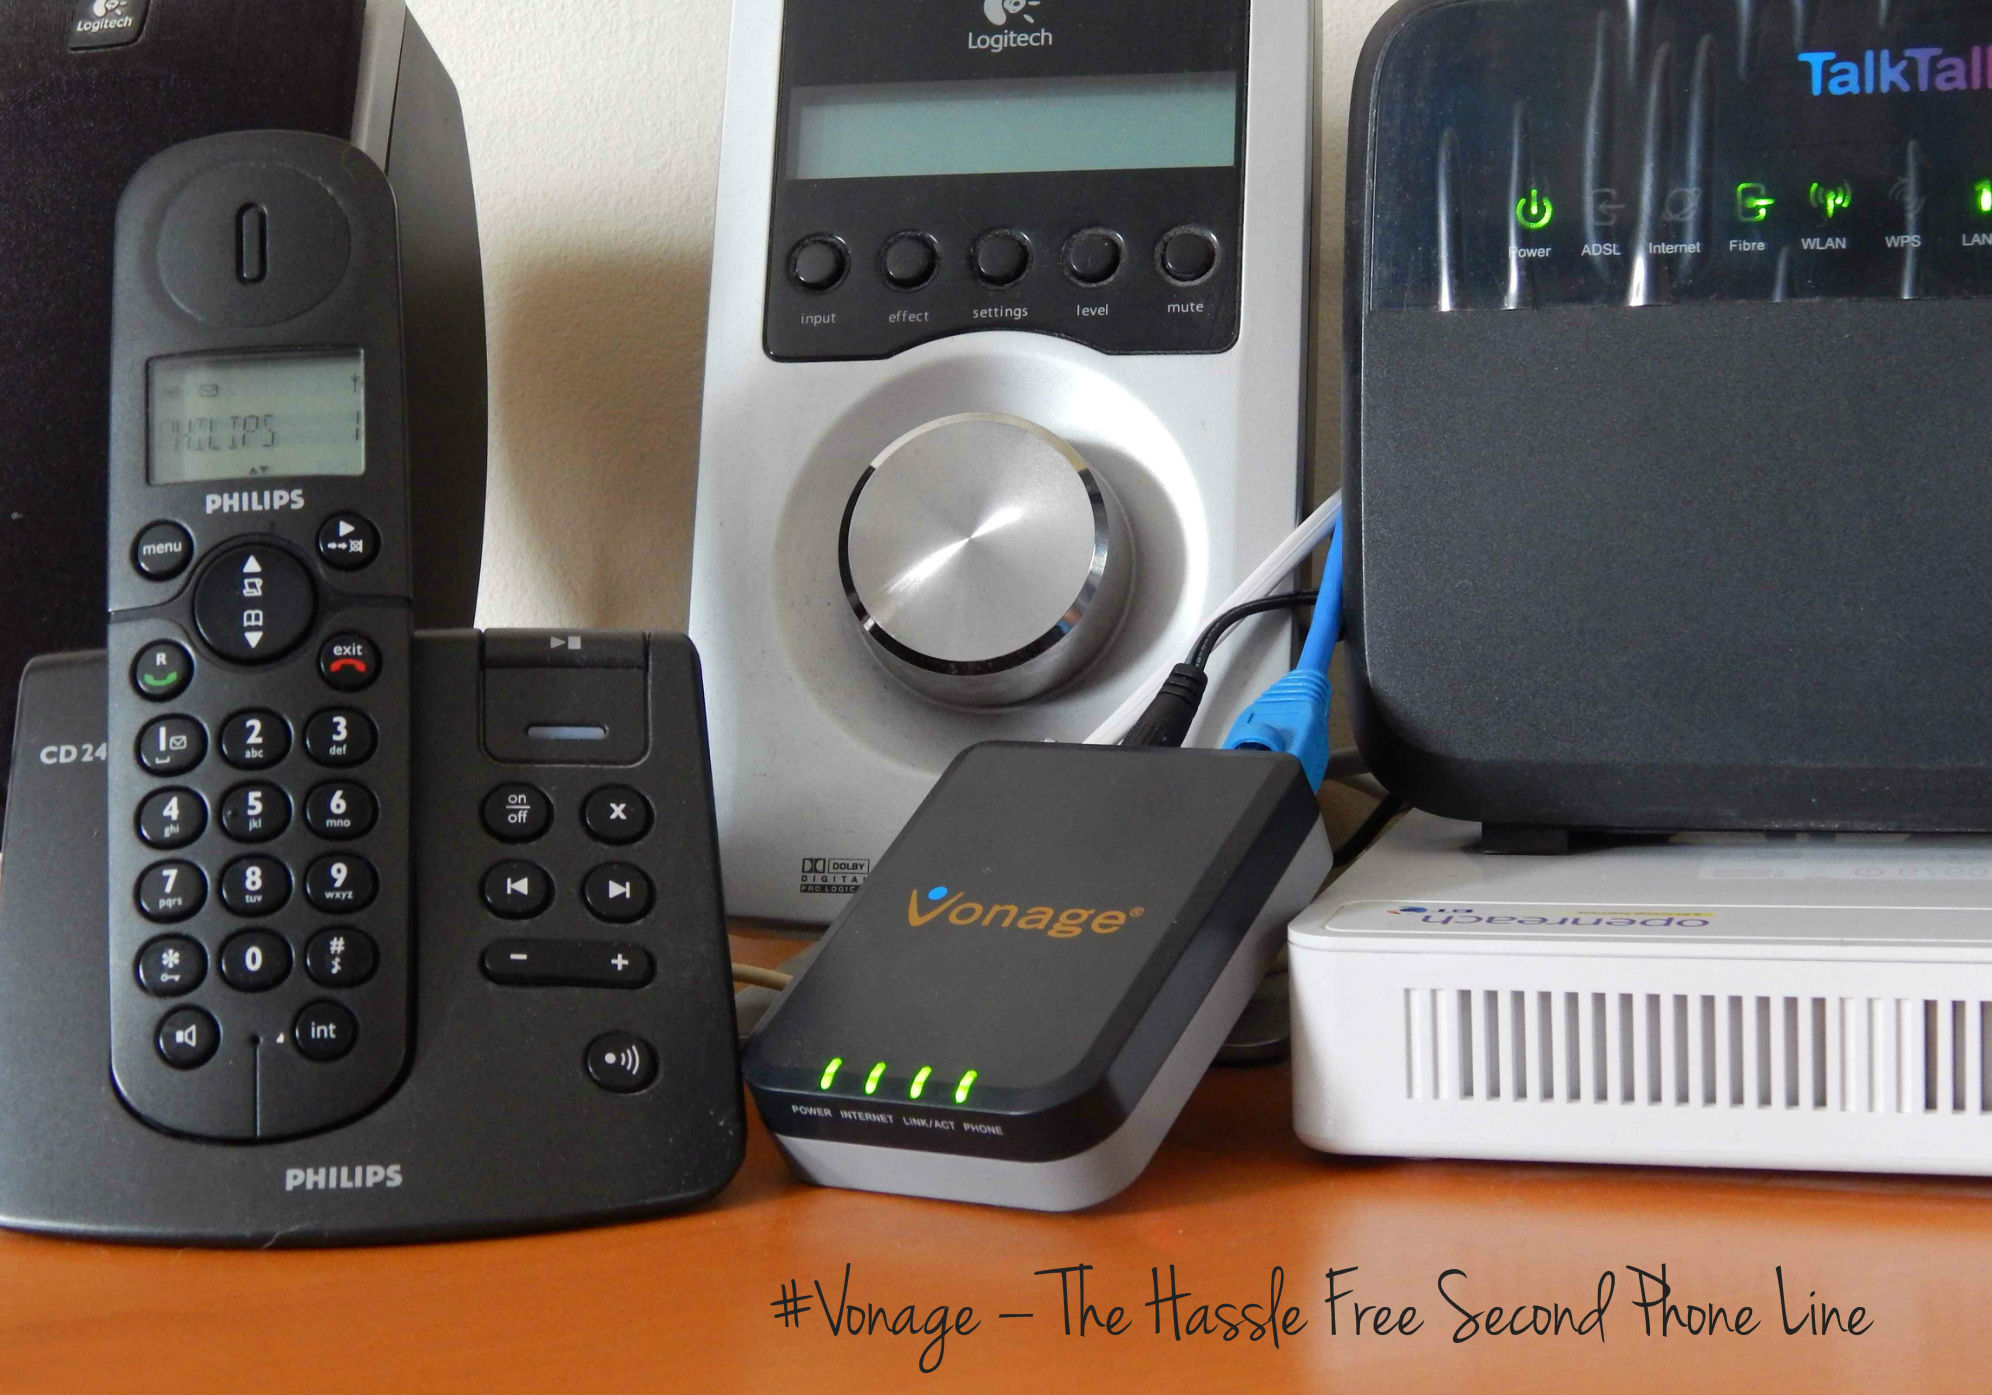 Vonage the hassle free second phone line bark time vonage the hassle free second phone line asfbconference2016 Image collections